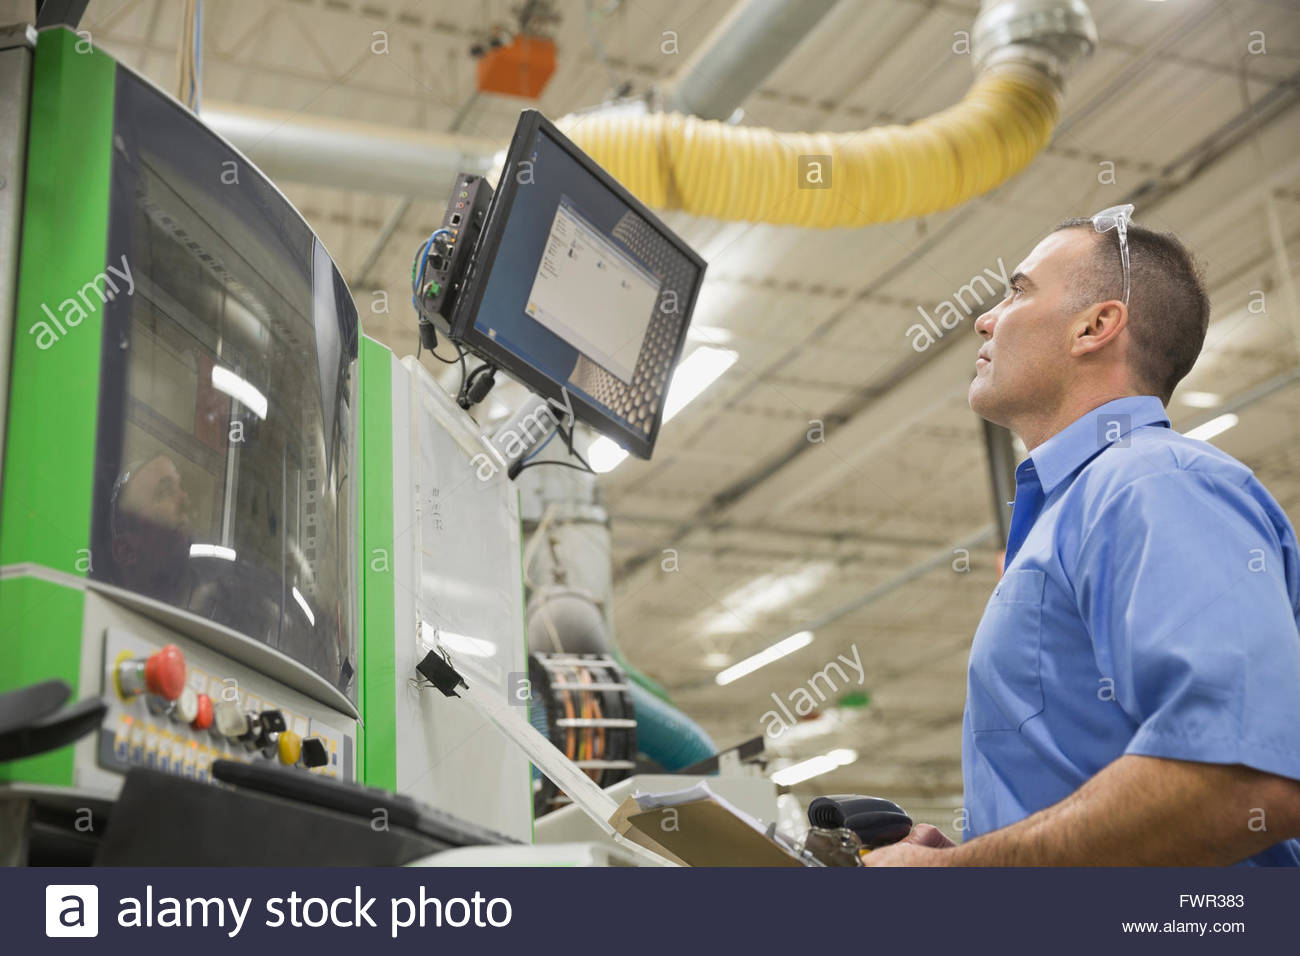 Worker looking at computer monitor in factory - Stock Image